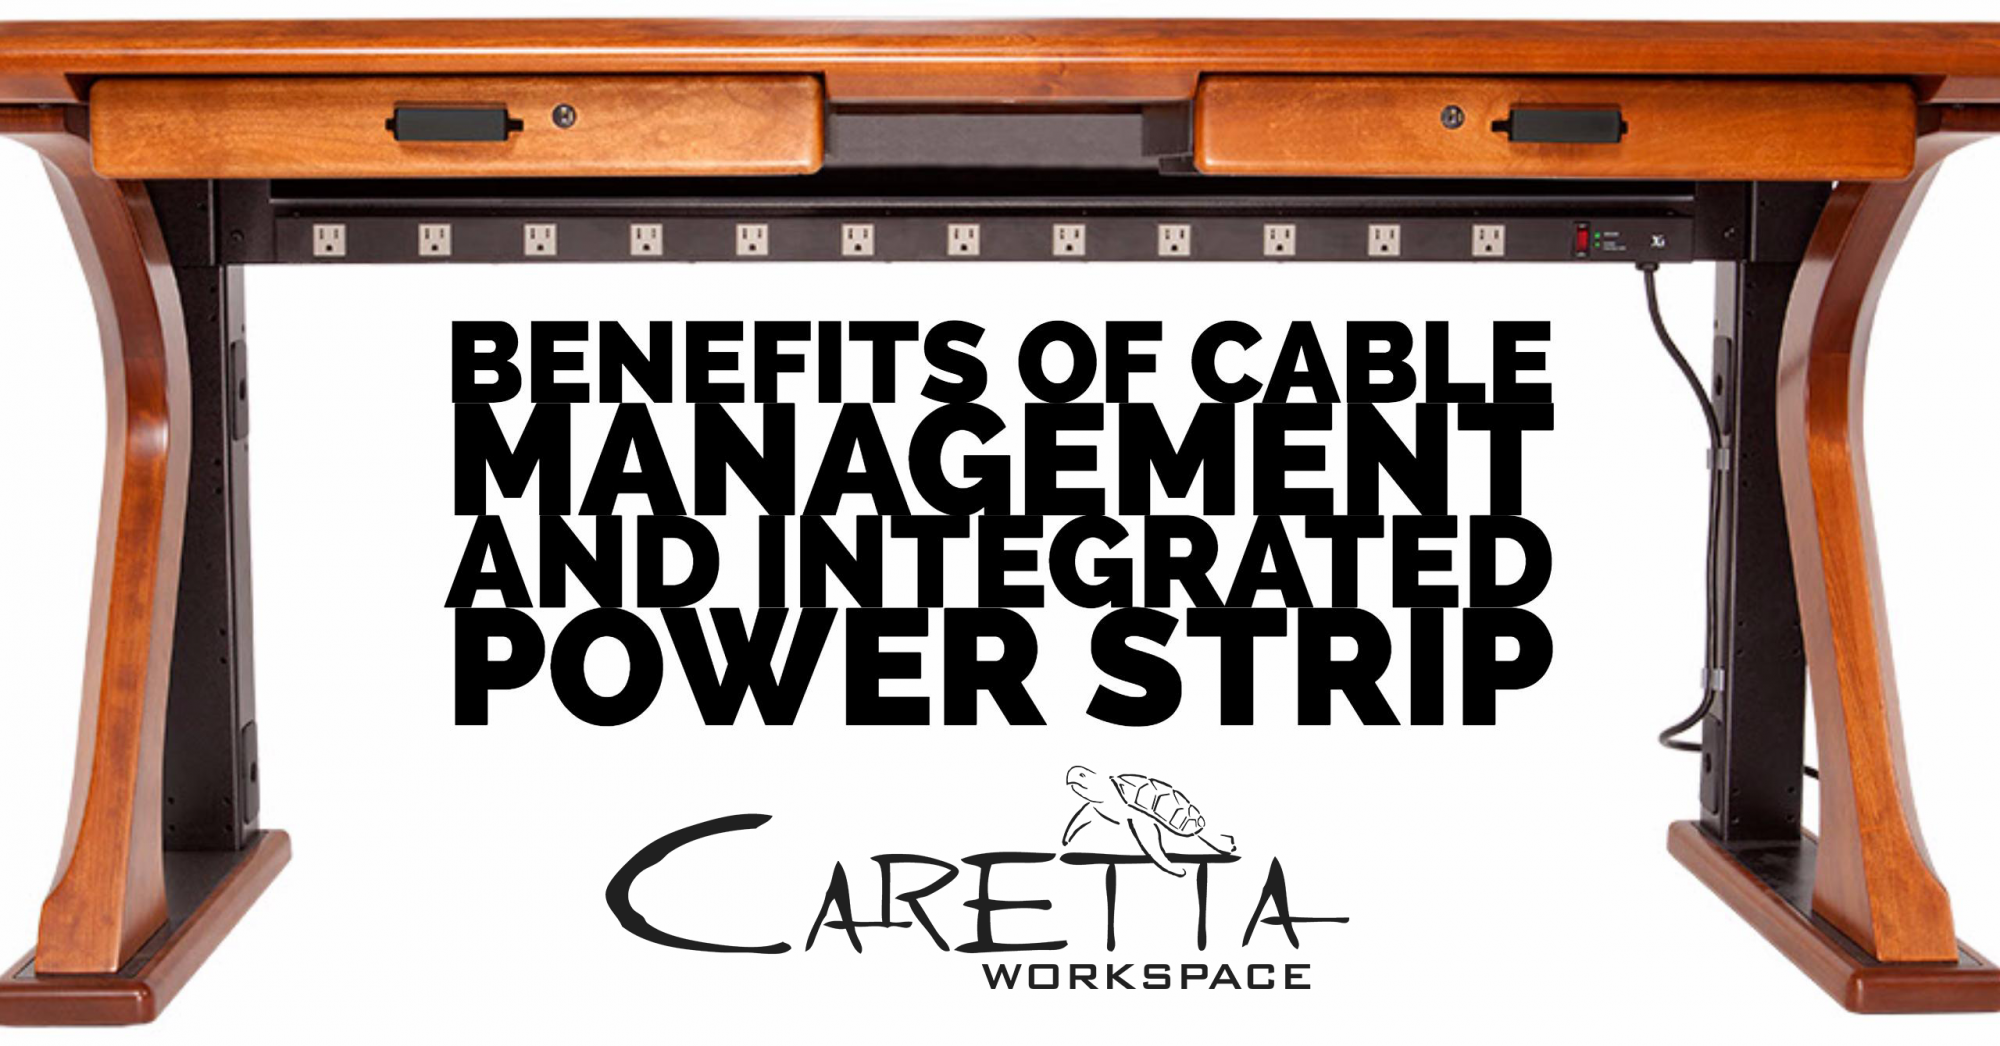 Benefits of Cable Management and Integrated Power Strip